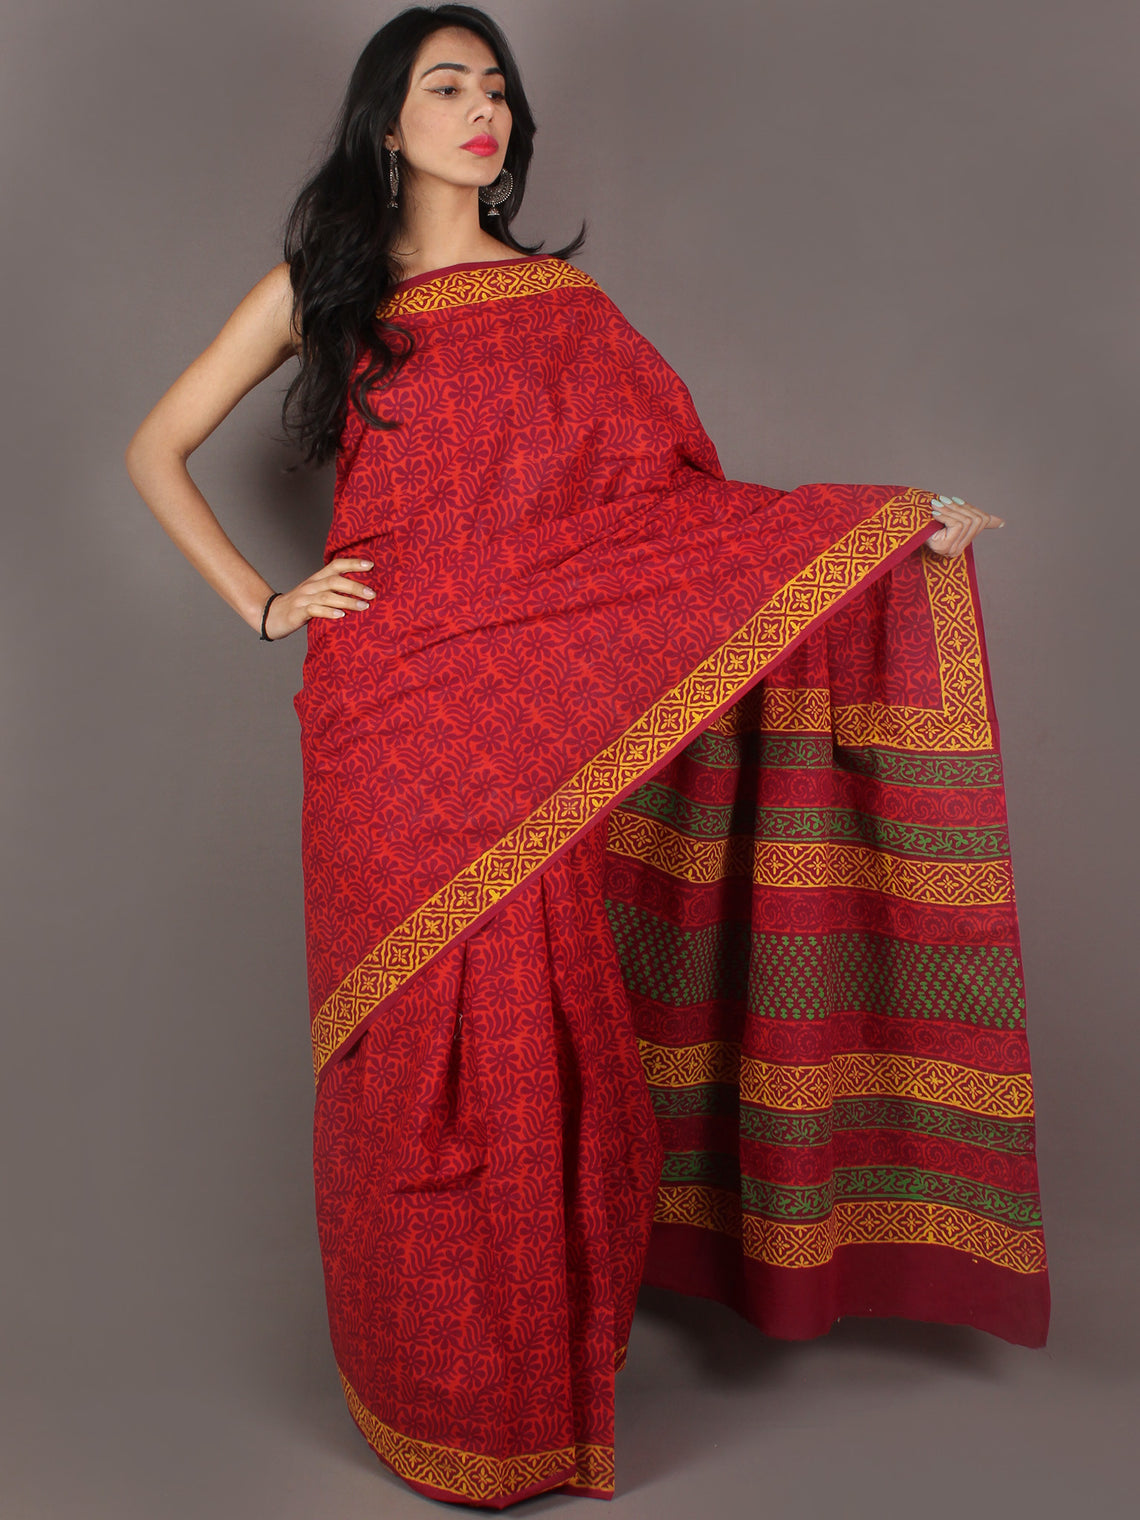 Red Purple Bagru Dabu Hand Block Printed in Cotton Mul Saree - S03170993